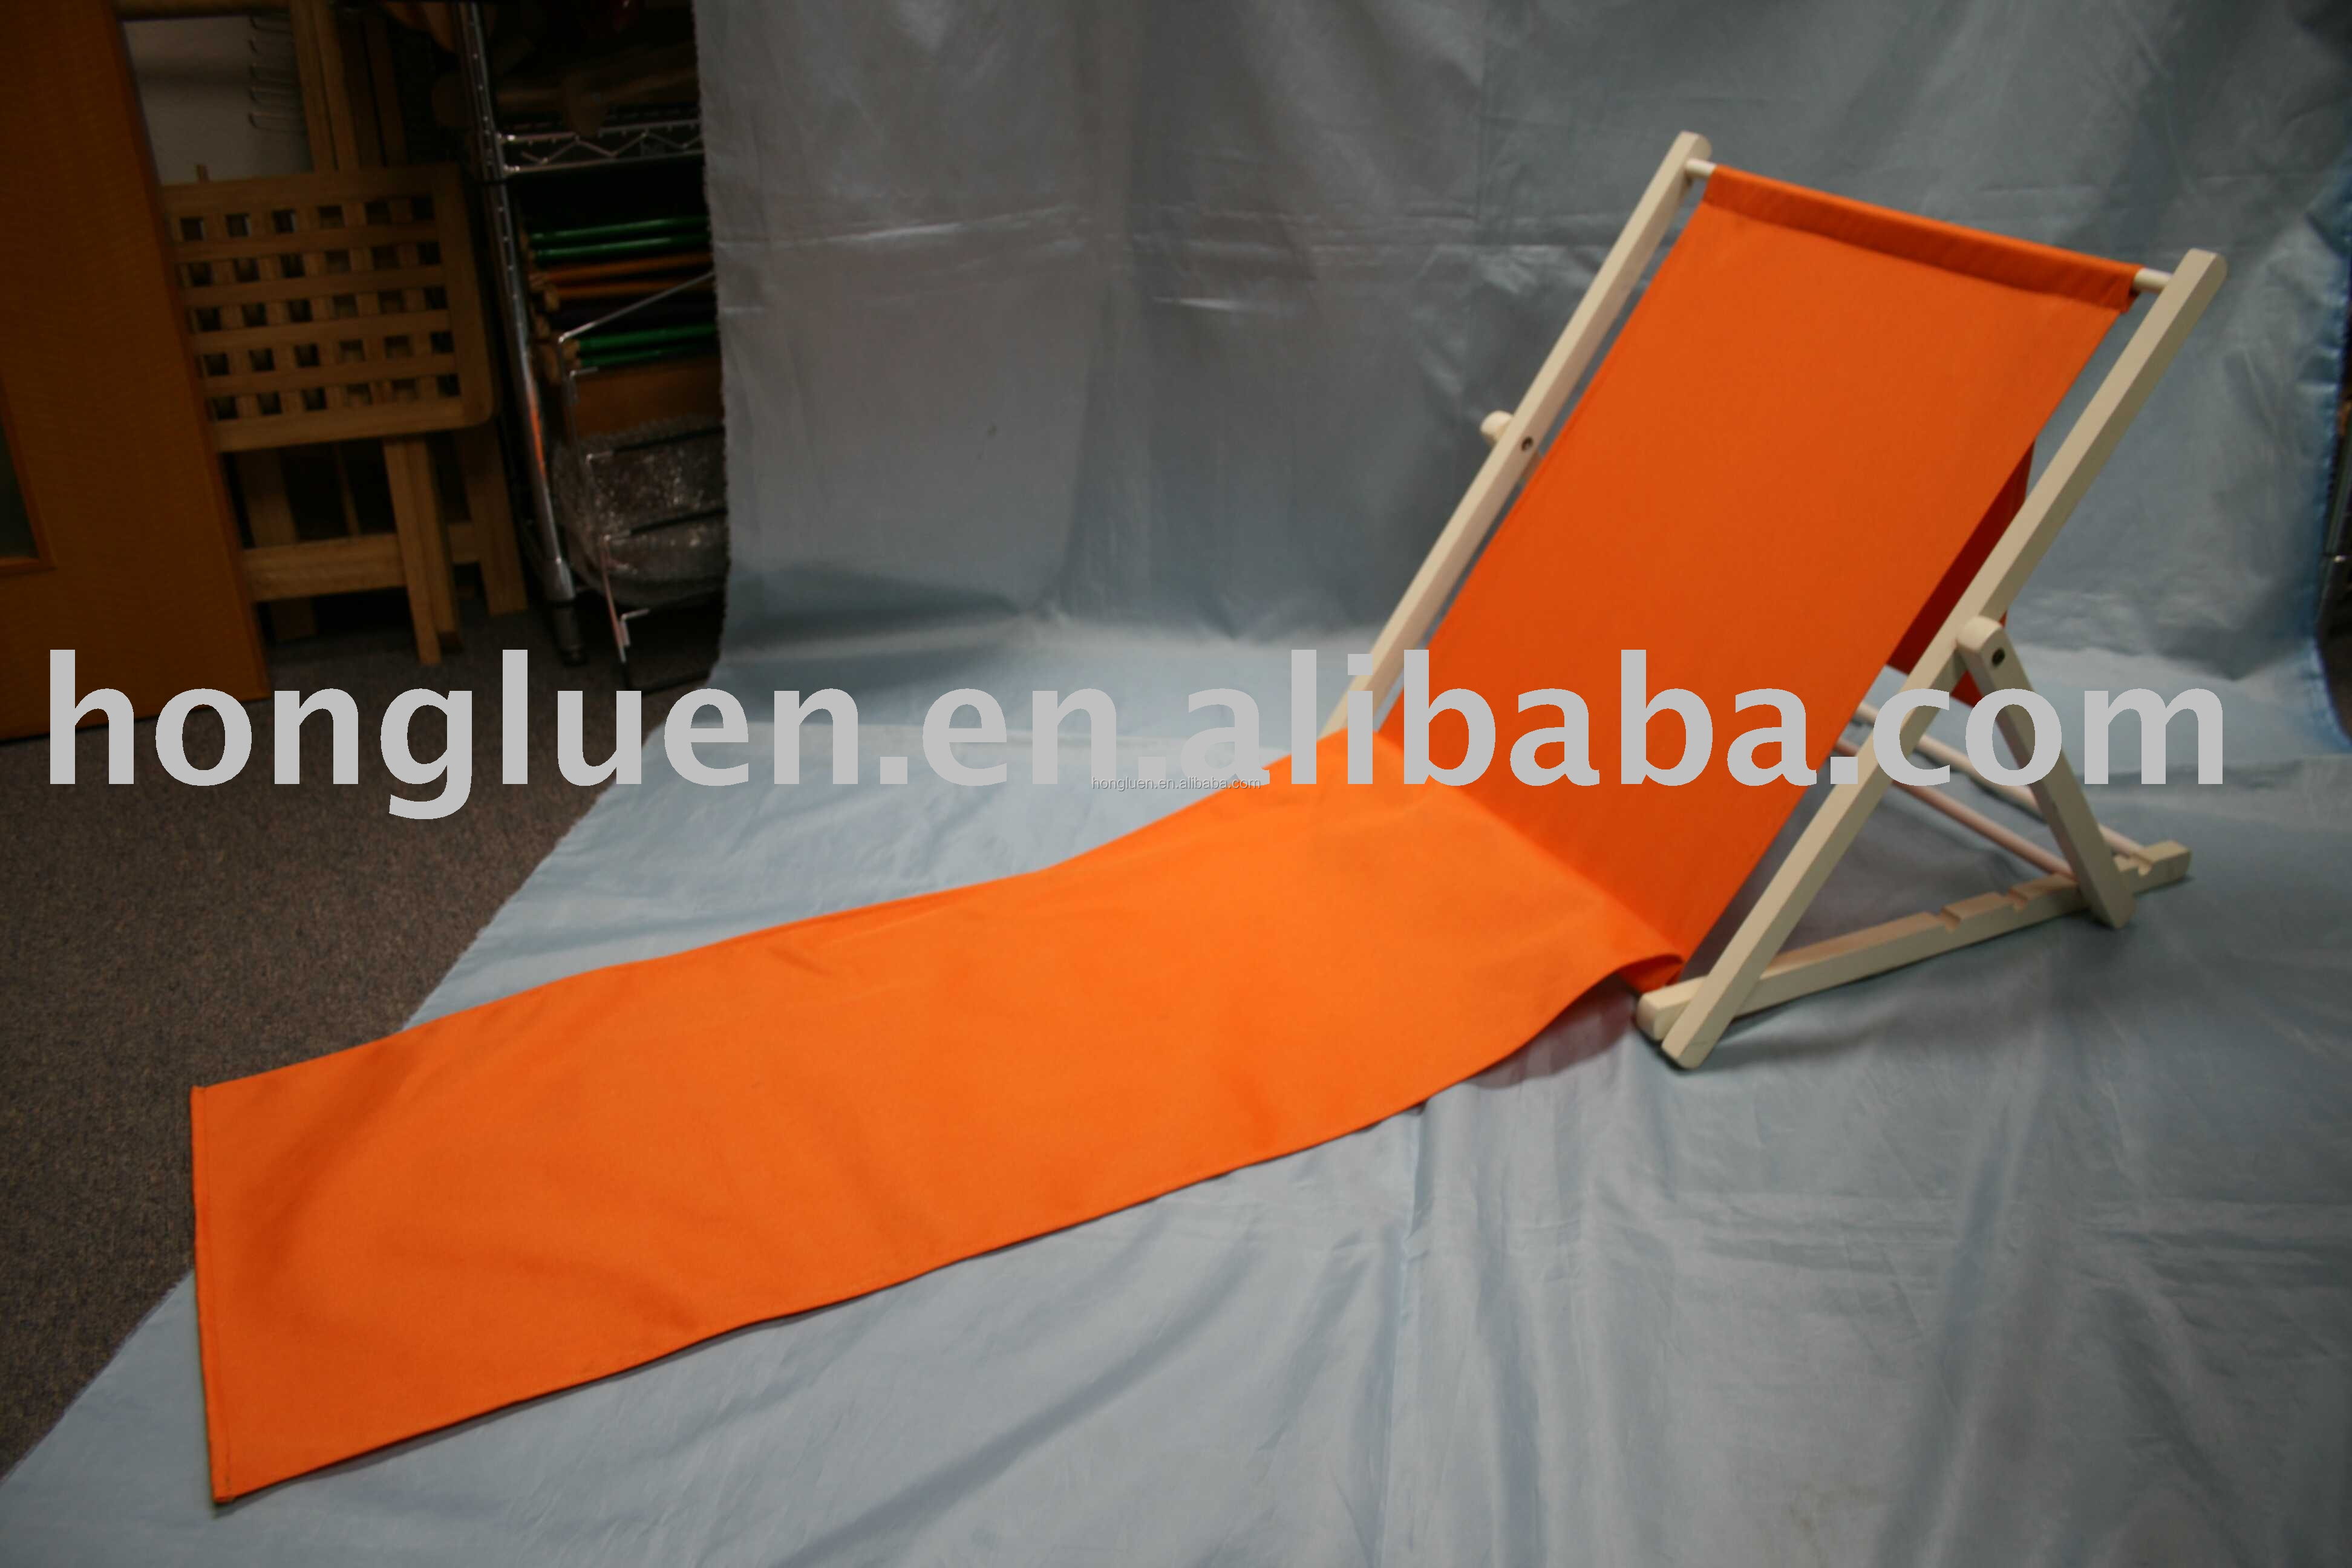 Floor Chair Folding Floor Chair Folding Suppliers and